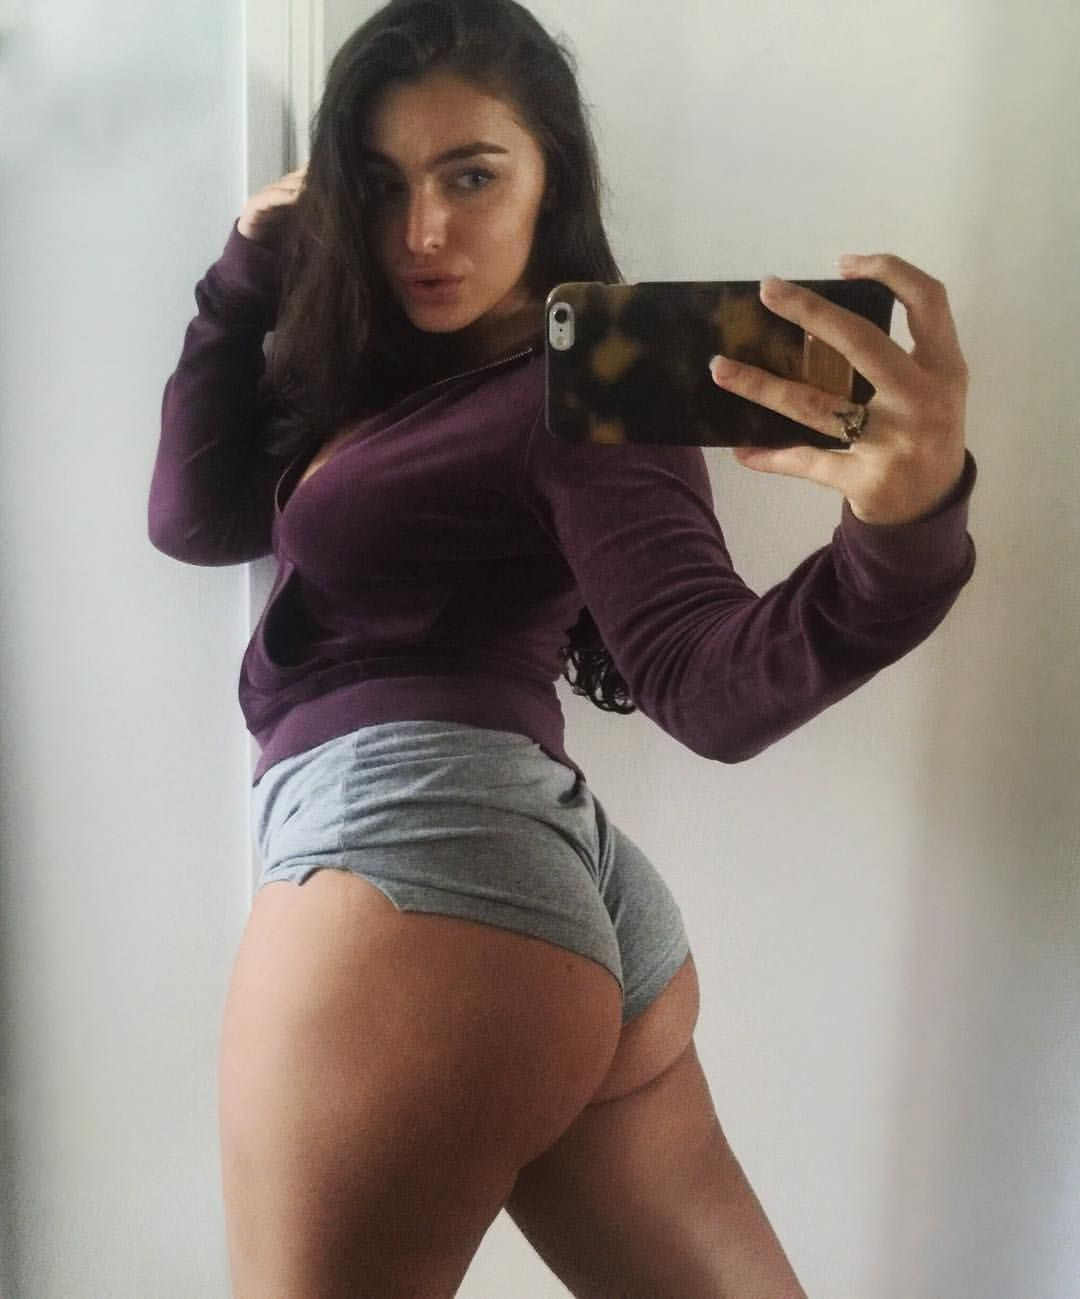 Emily Rinaudo big ass in hot short pants selfie - Emily Rinaudo Nude OnlyFans Oiled Tits Leaked Video